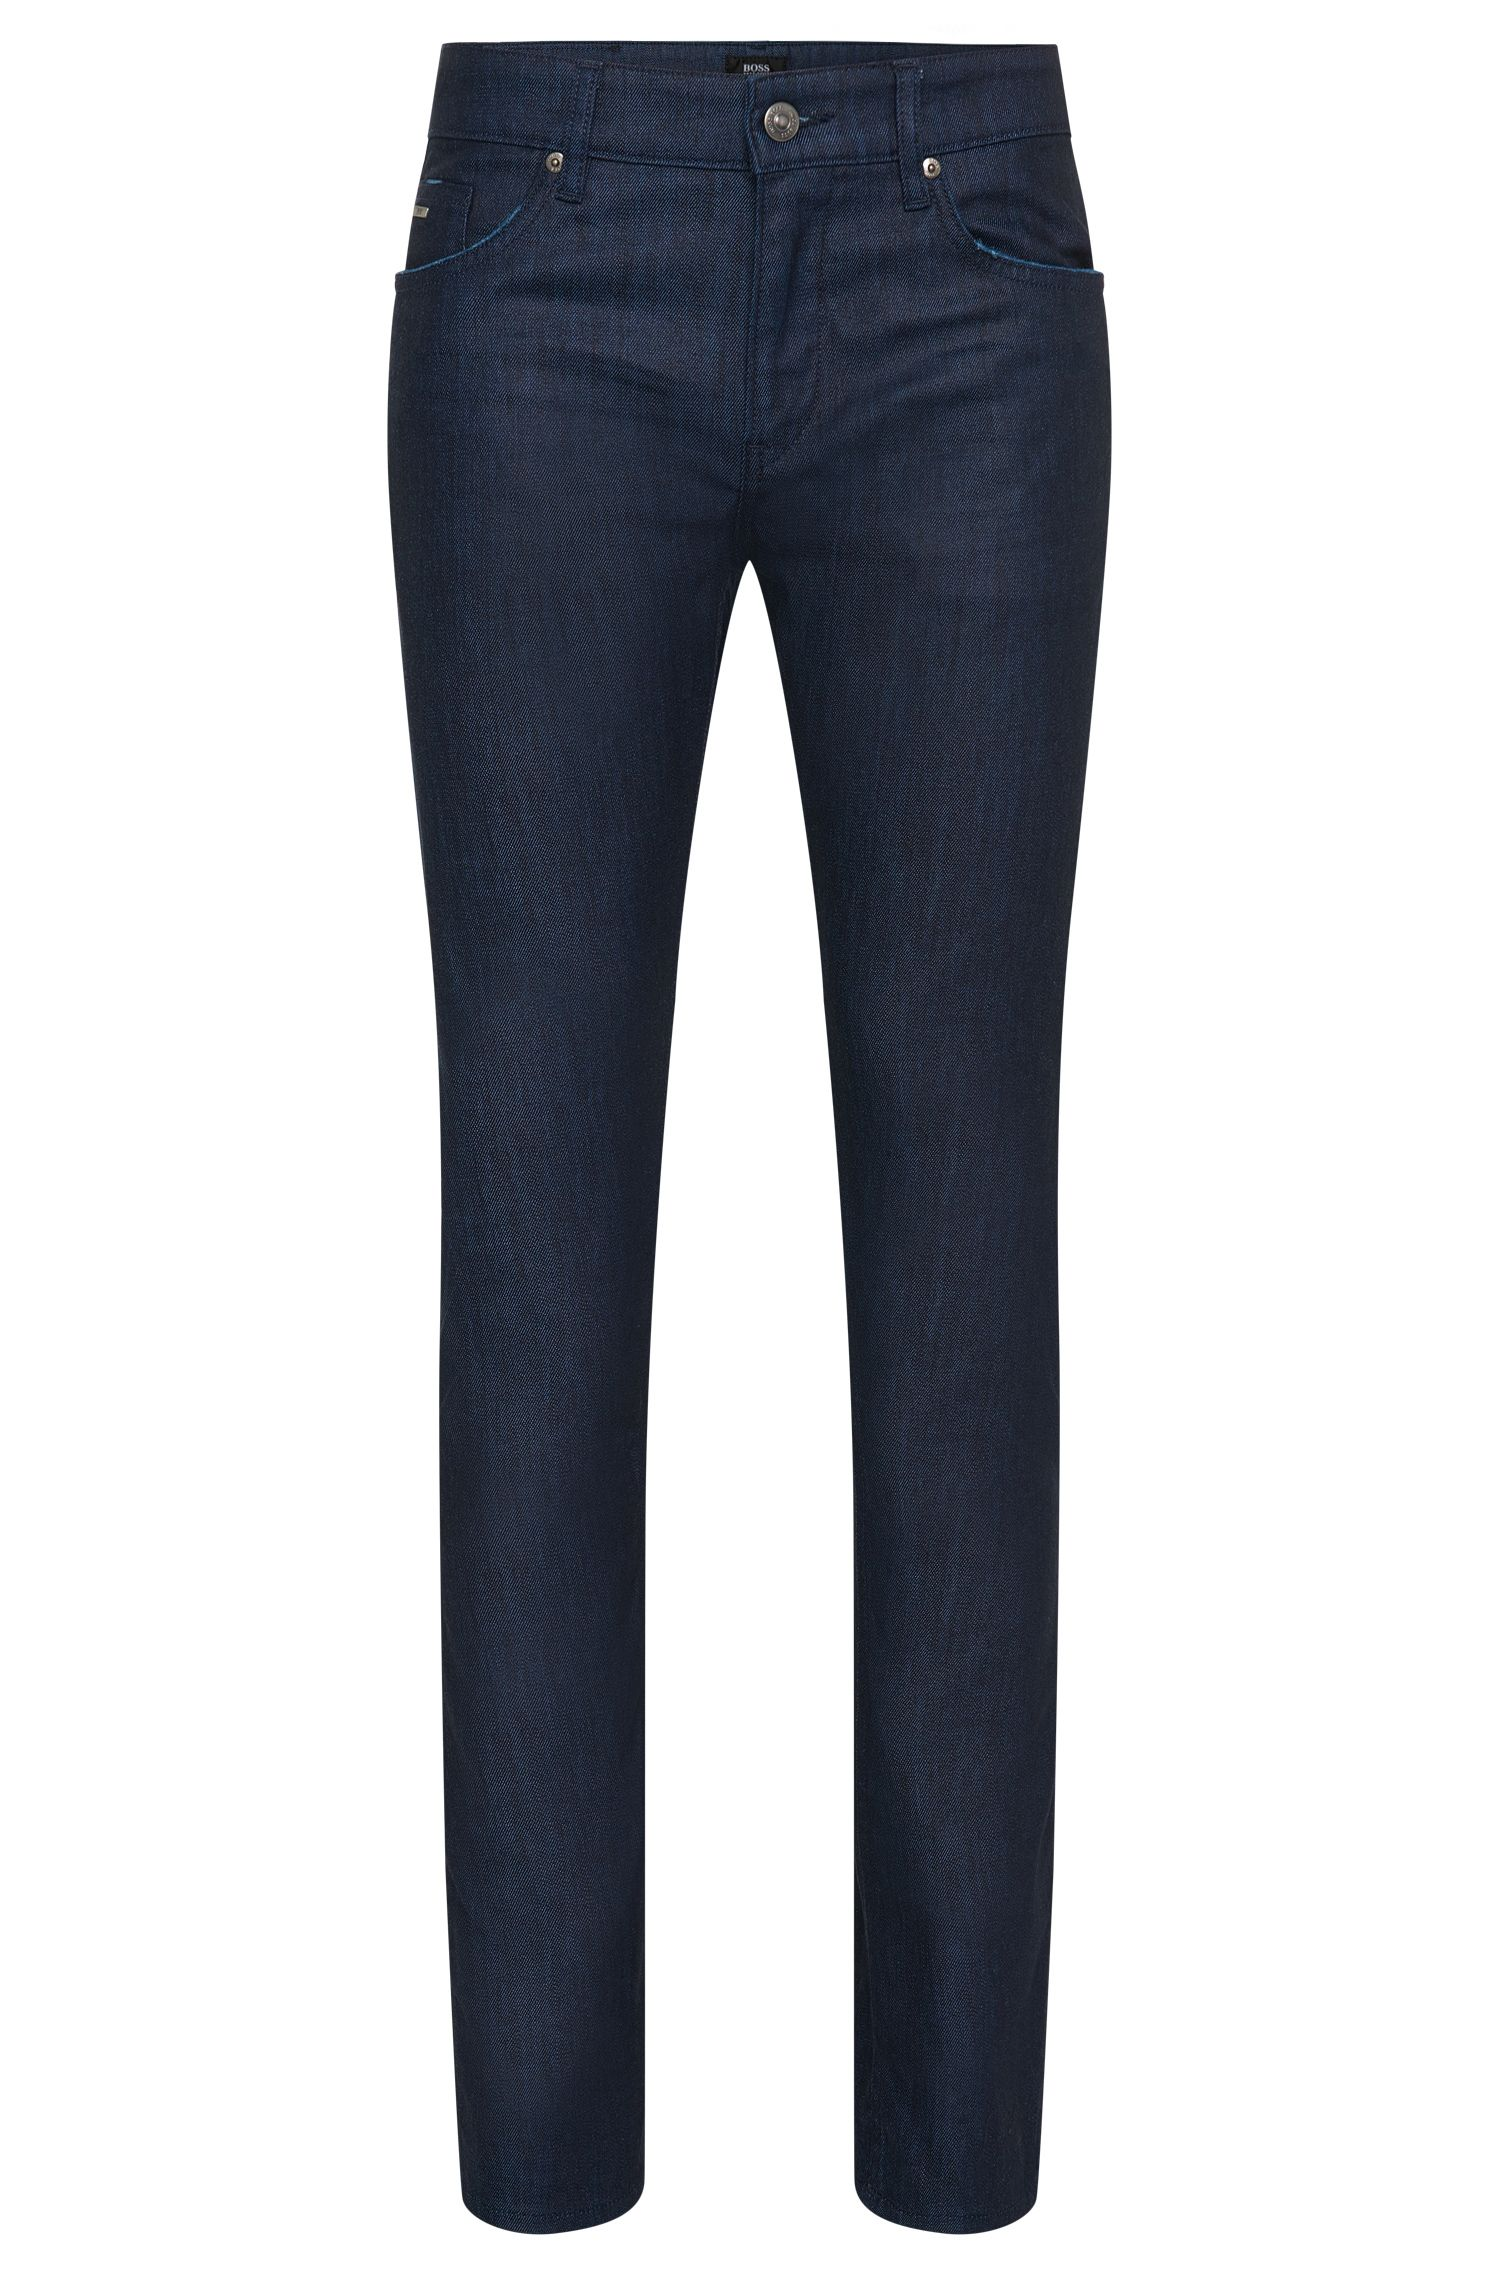 Jeans Slim Fit en coton stretch : « Delaware3 »